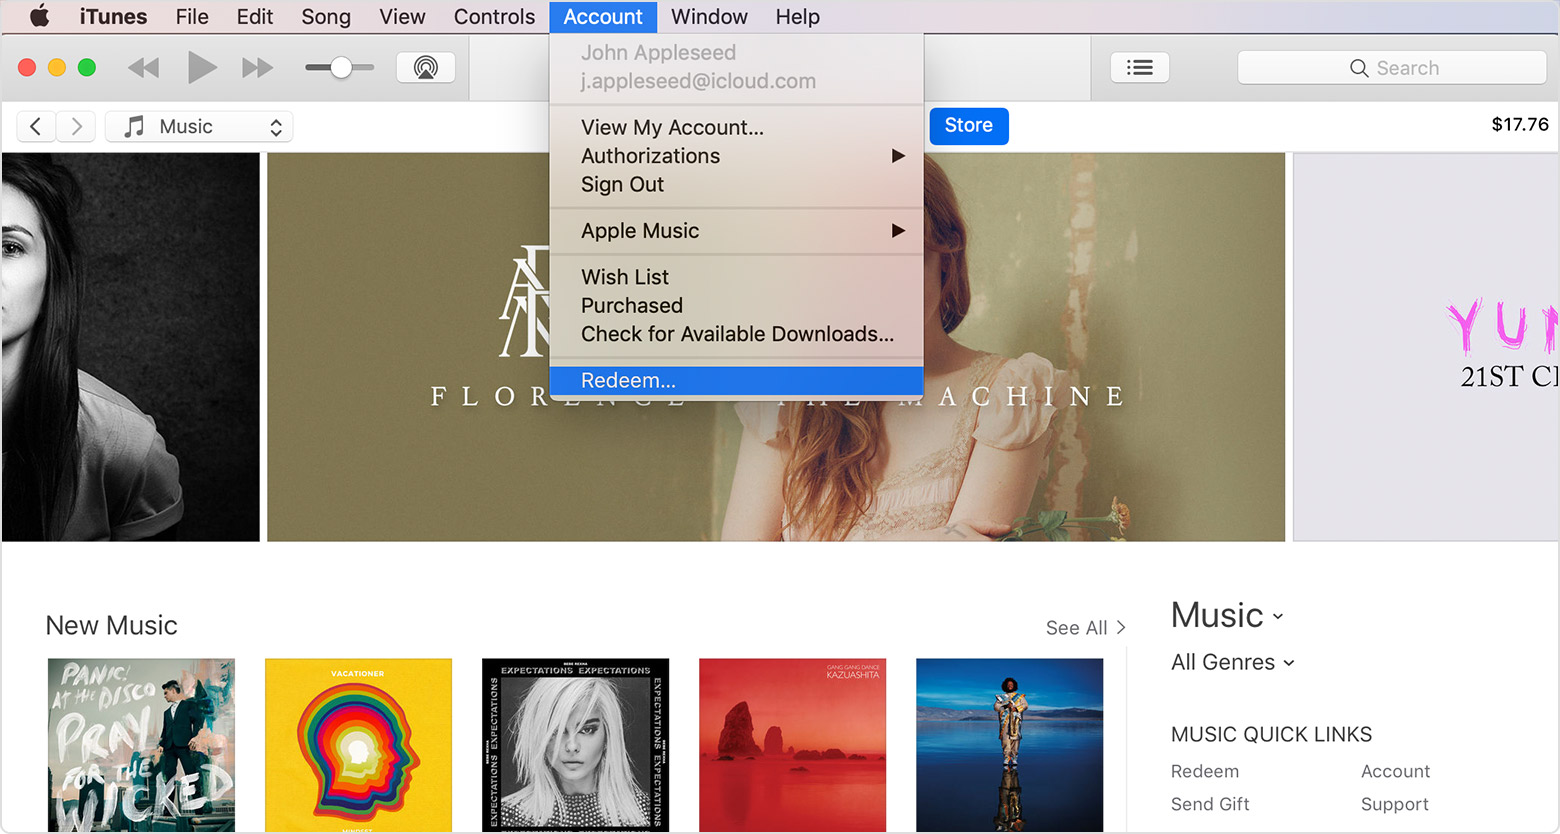 The Account menu in iTunes, with Redeem selected.